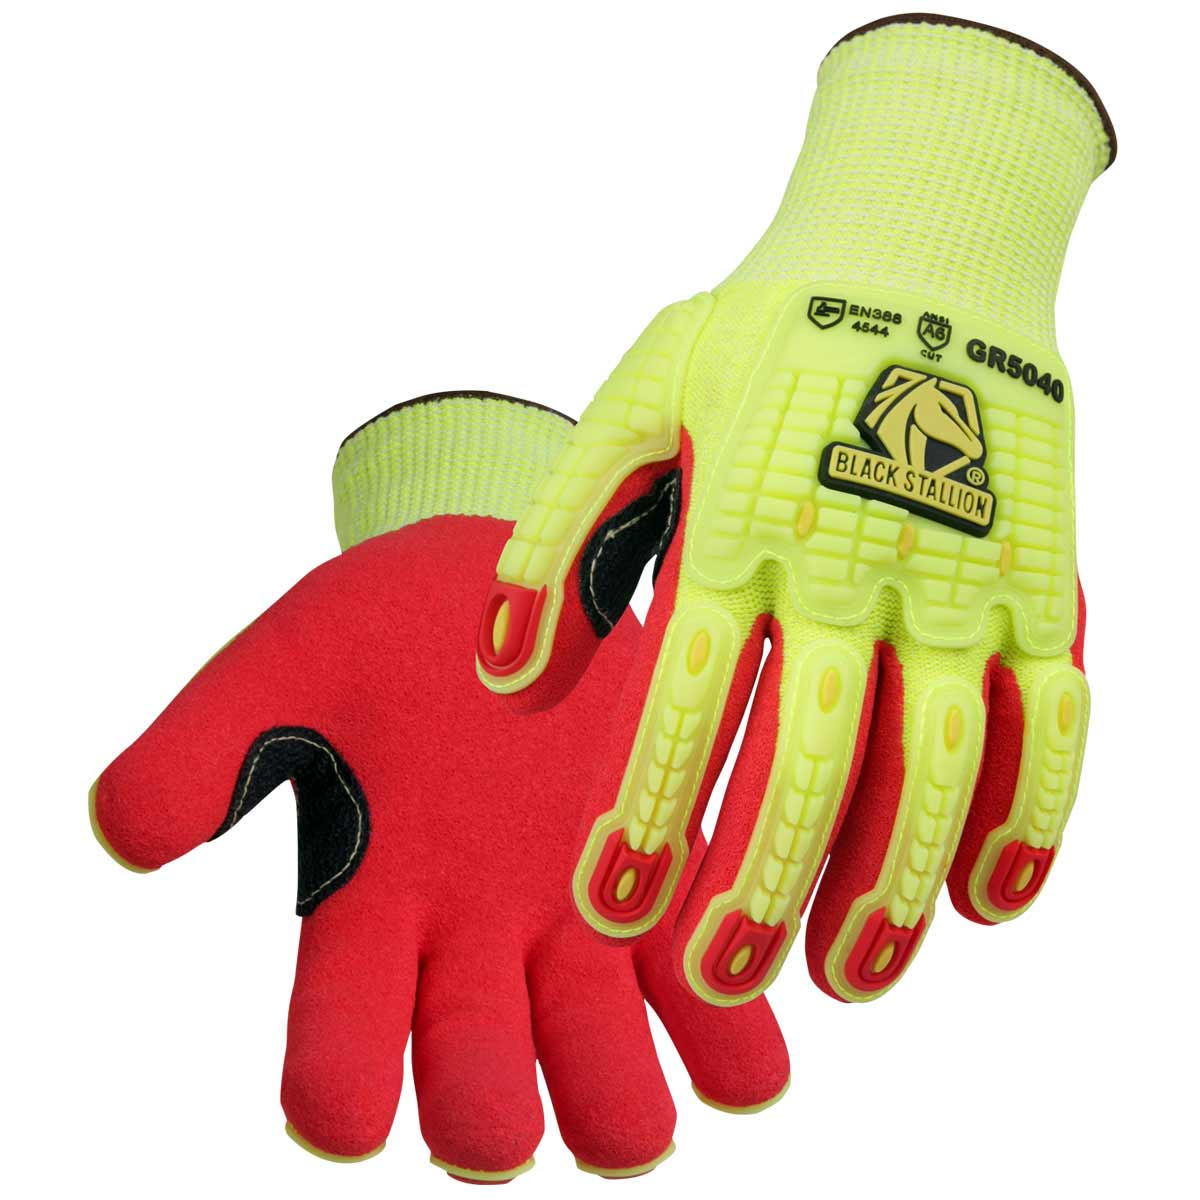 A6 CUT RESISTANT AND IMPACT SANDY NITRILE COATED HI-VIS HPPE BLEND GLOVE. Pack 6. Medium. GR5040-HR-MED